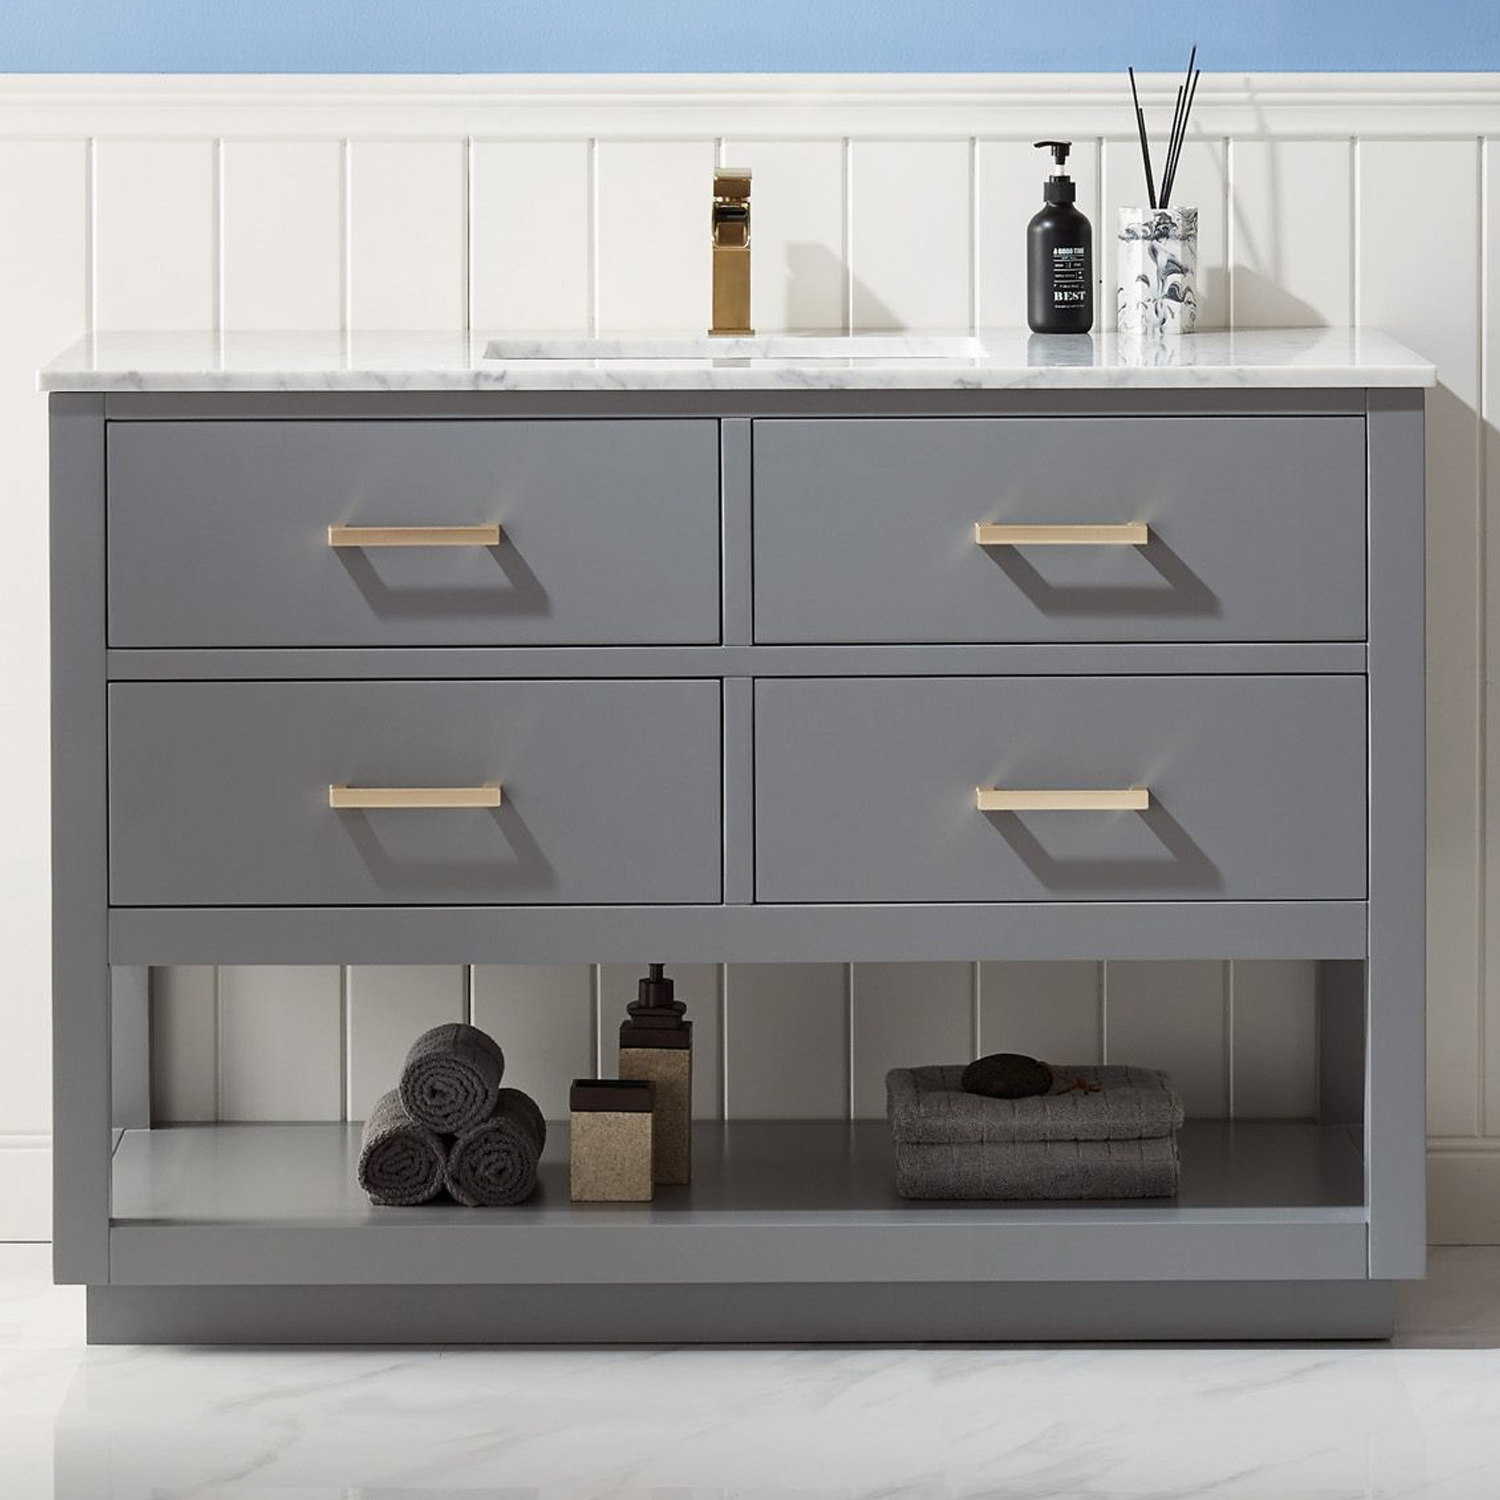 """Issac Edwards Collection 48"""" Single Bathroom Vanity Set in Gray and Carrara White Marble Countertop with Mirror Option"""